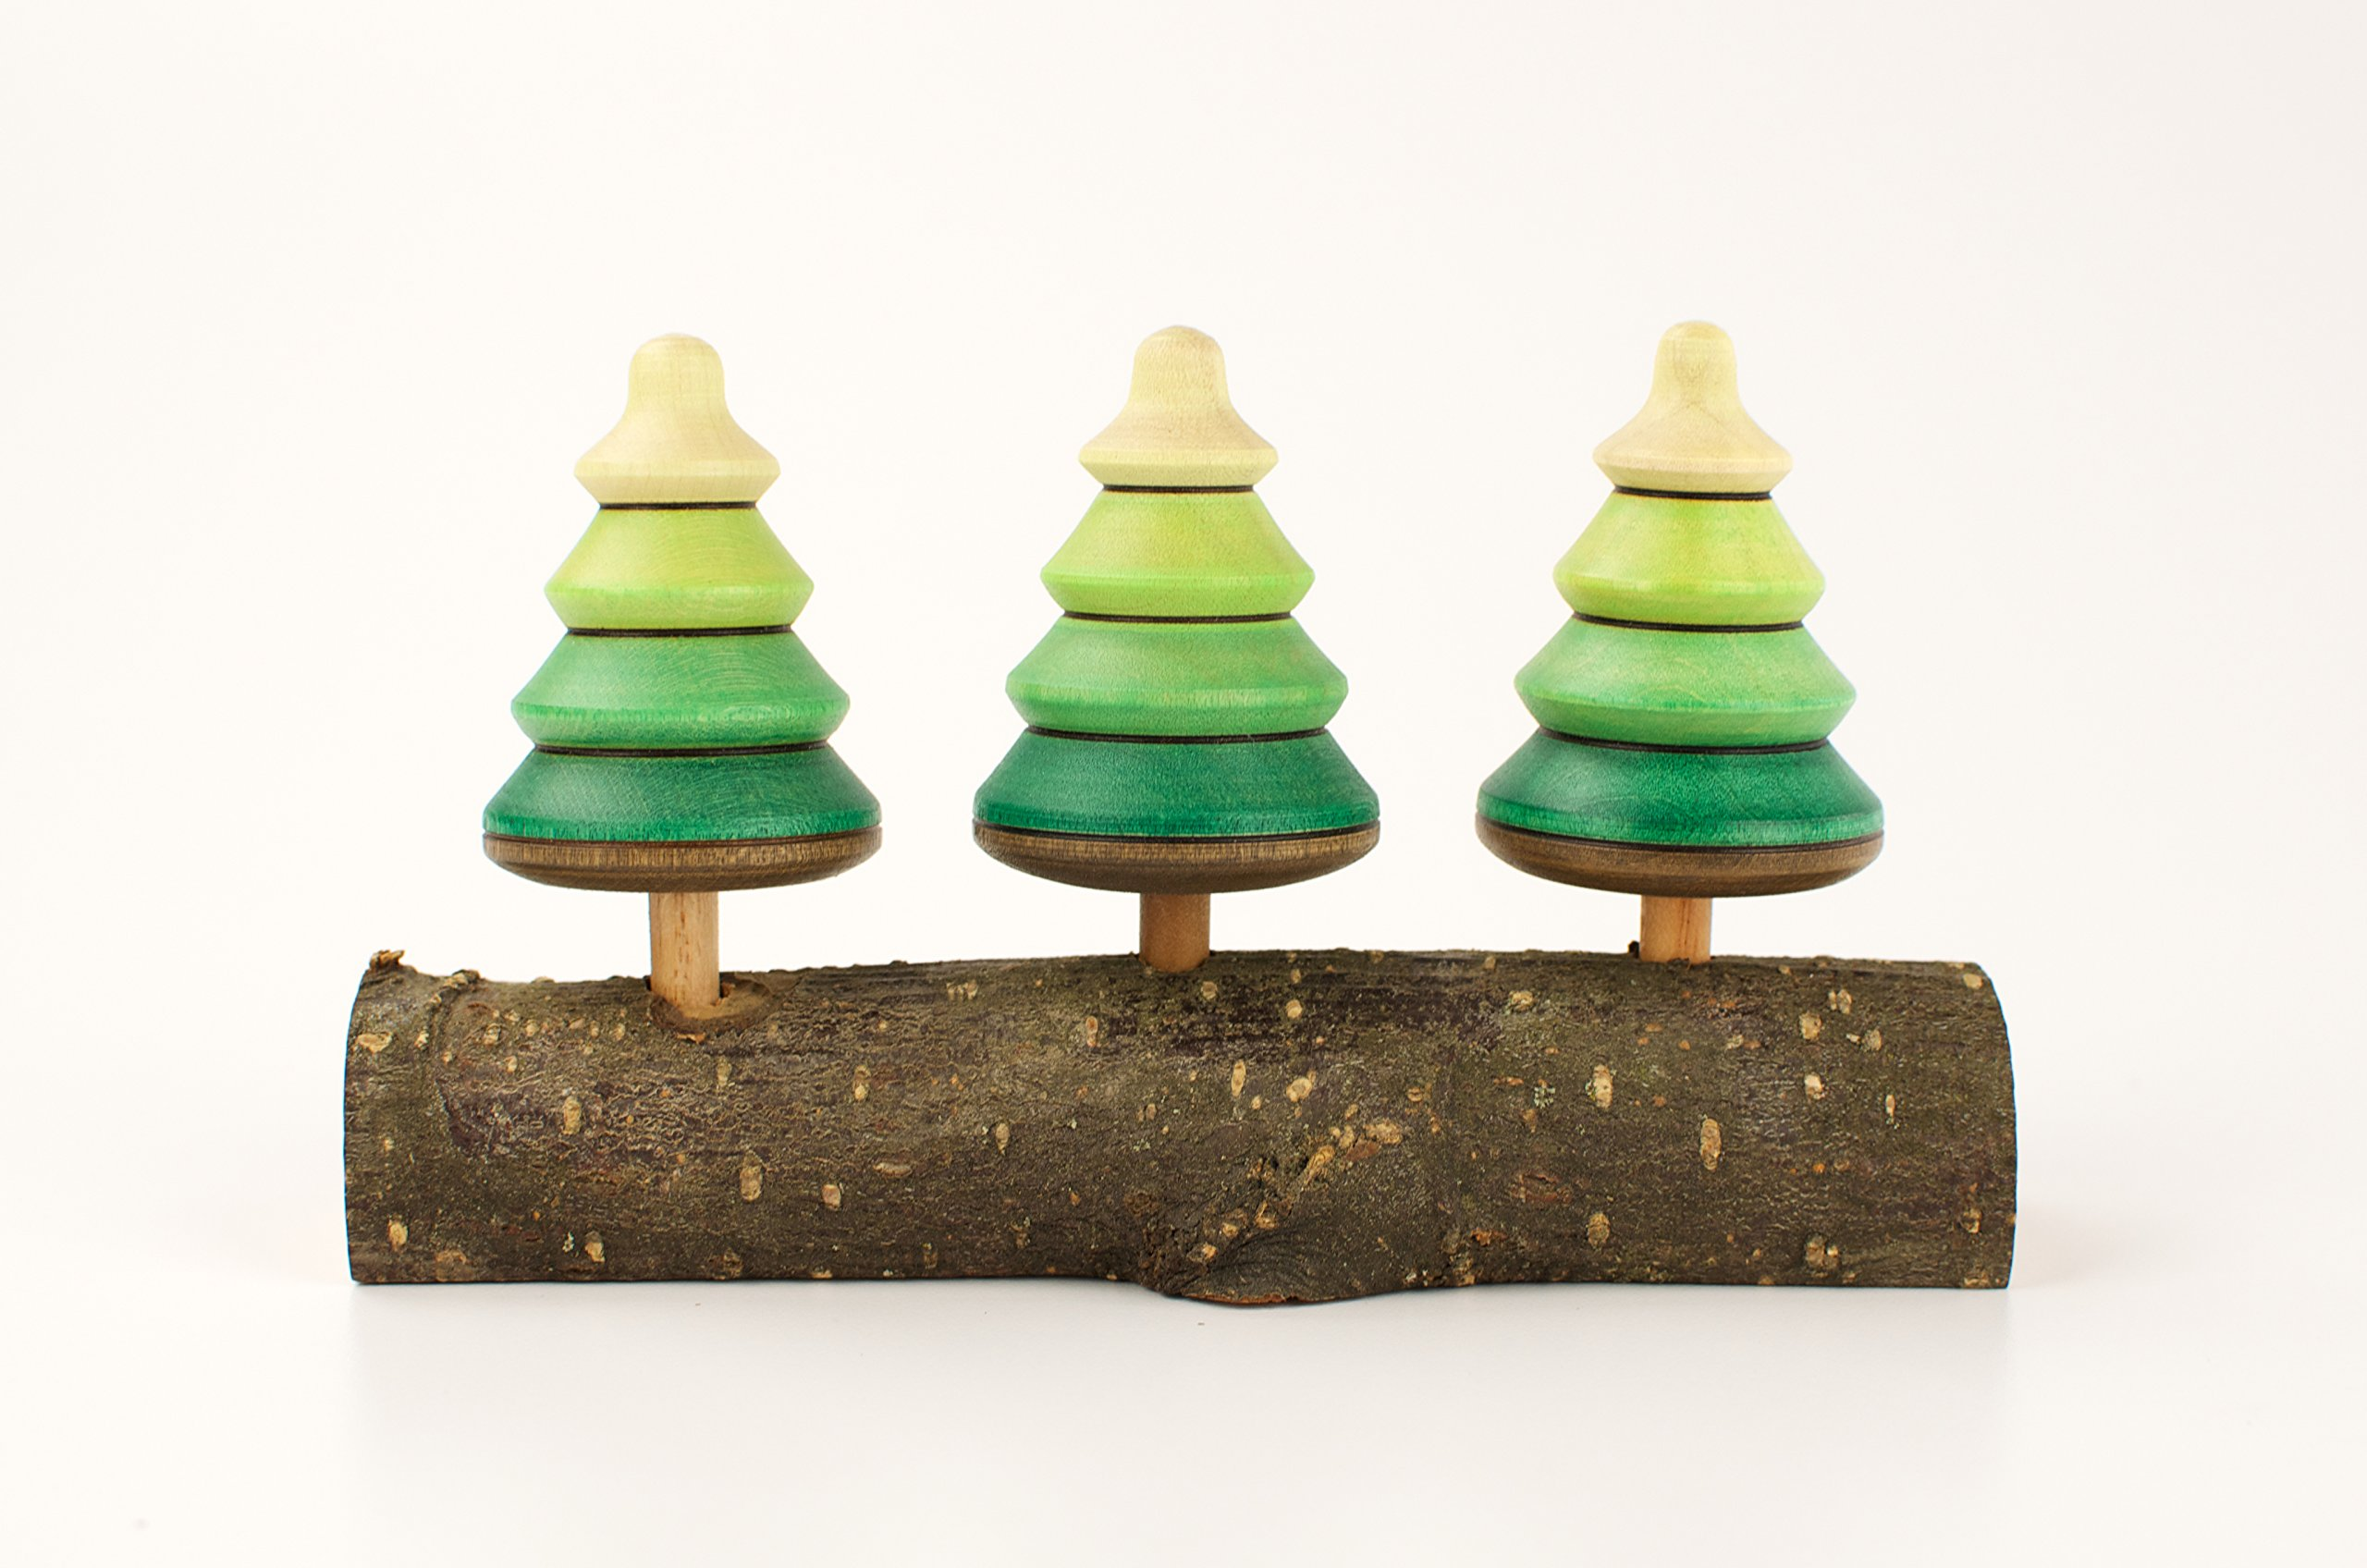 Playable ART Spinning Tree Tops - Set of 3 on a real tree branch by playableART